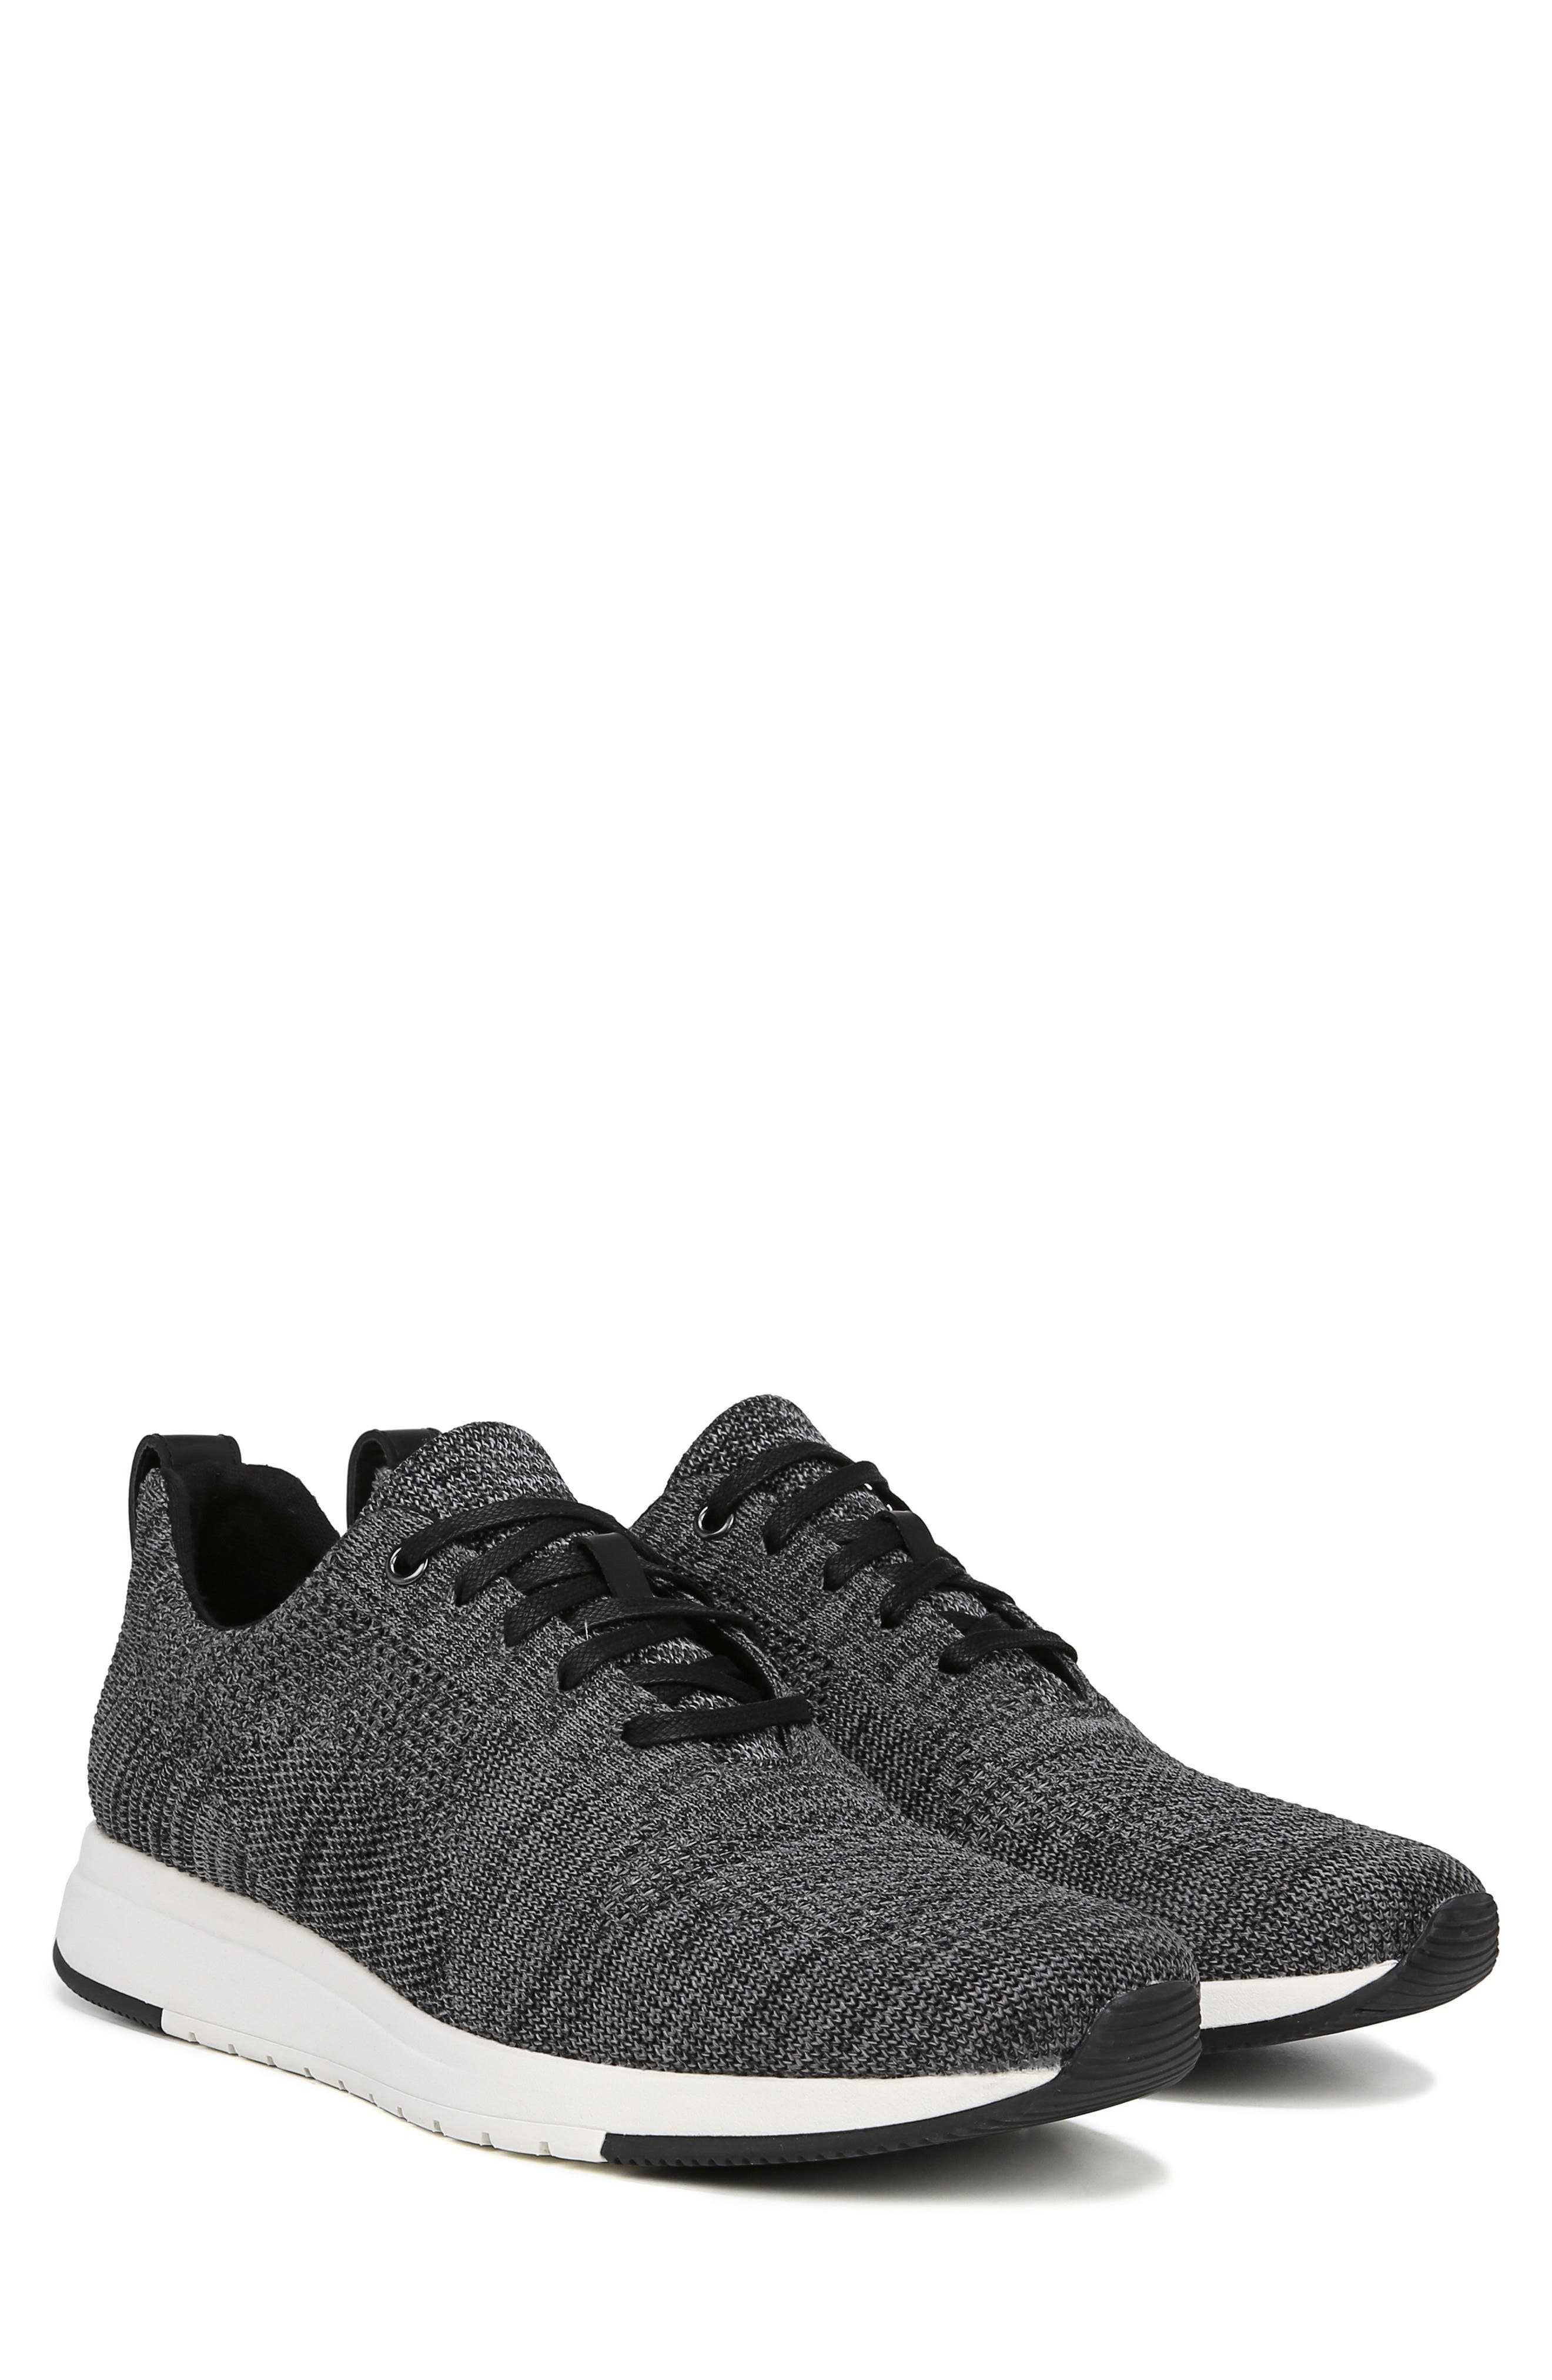 VINCE, Palo Knit Sneaker, Alternate thumbnail 9, color, MARL GREY/ BLACK